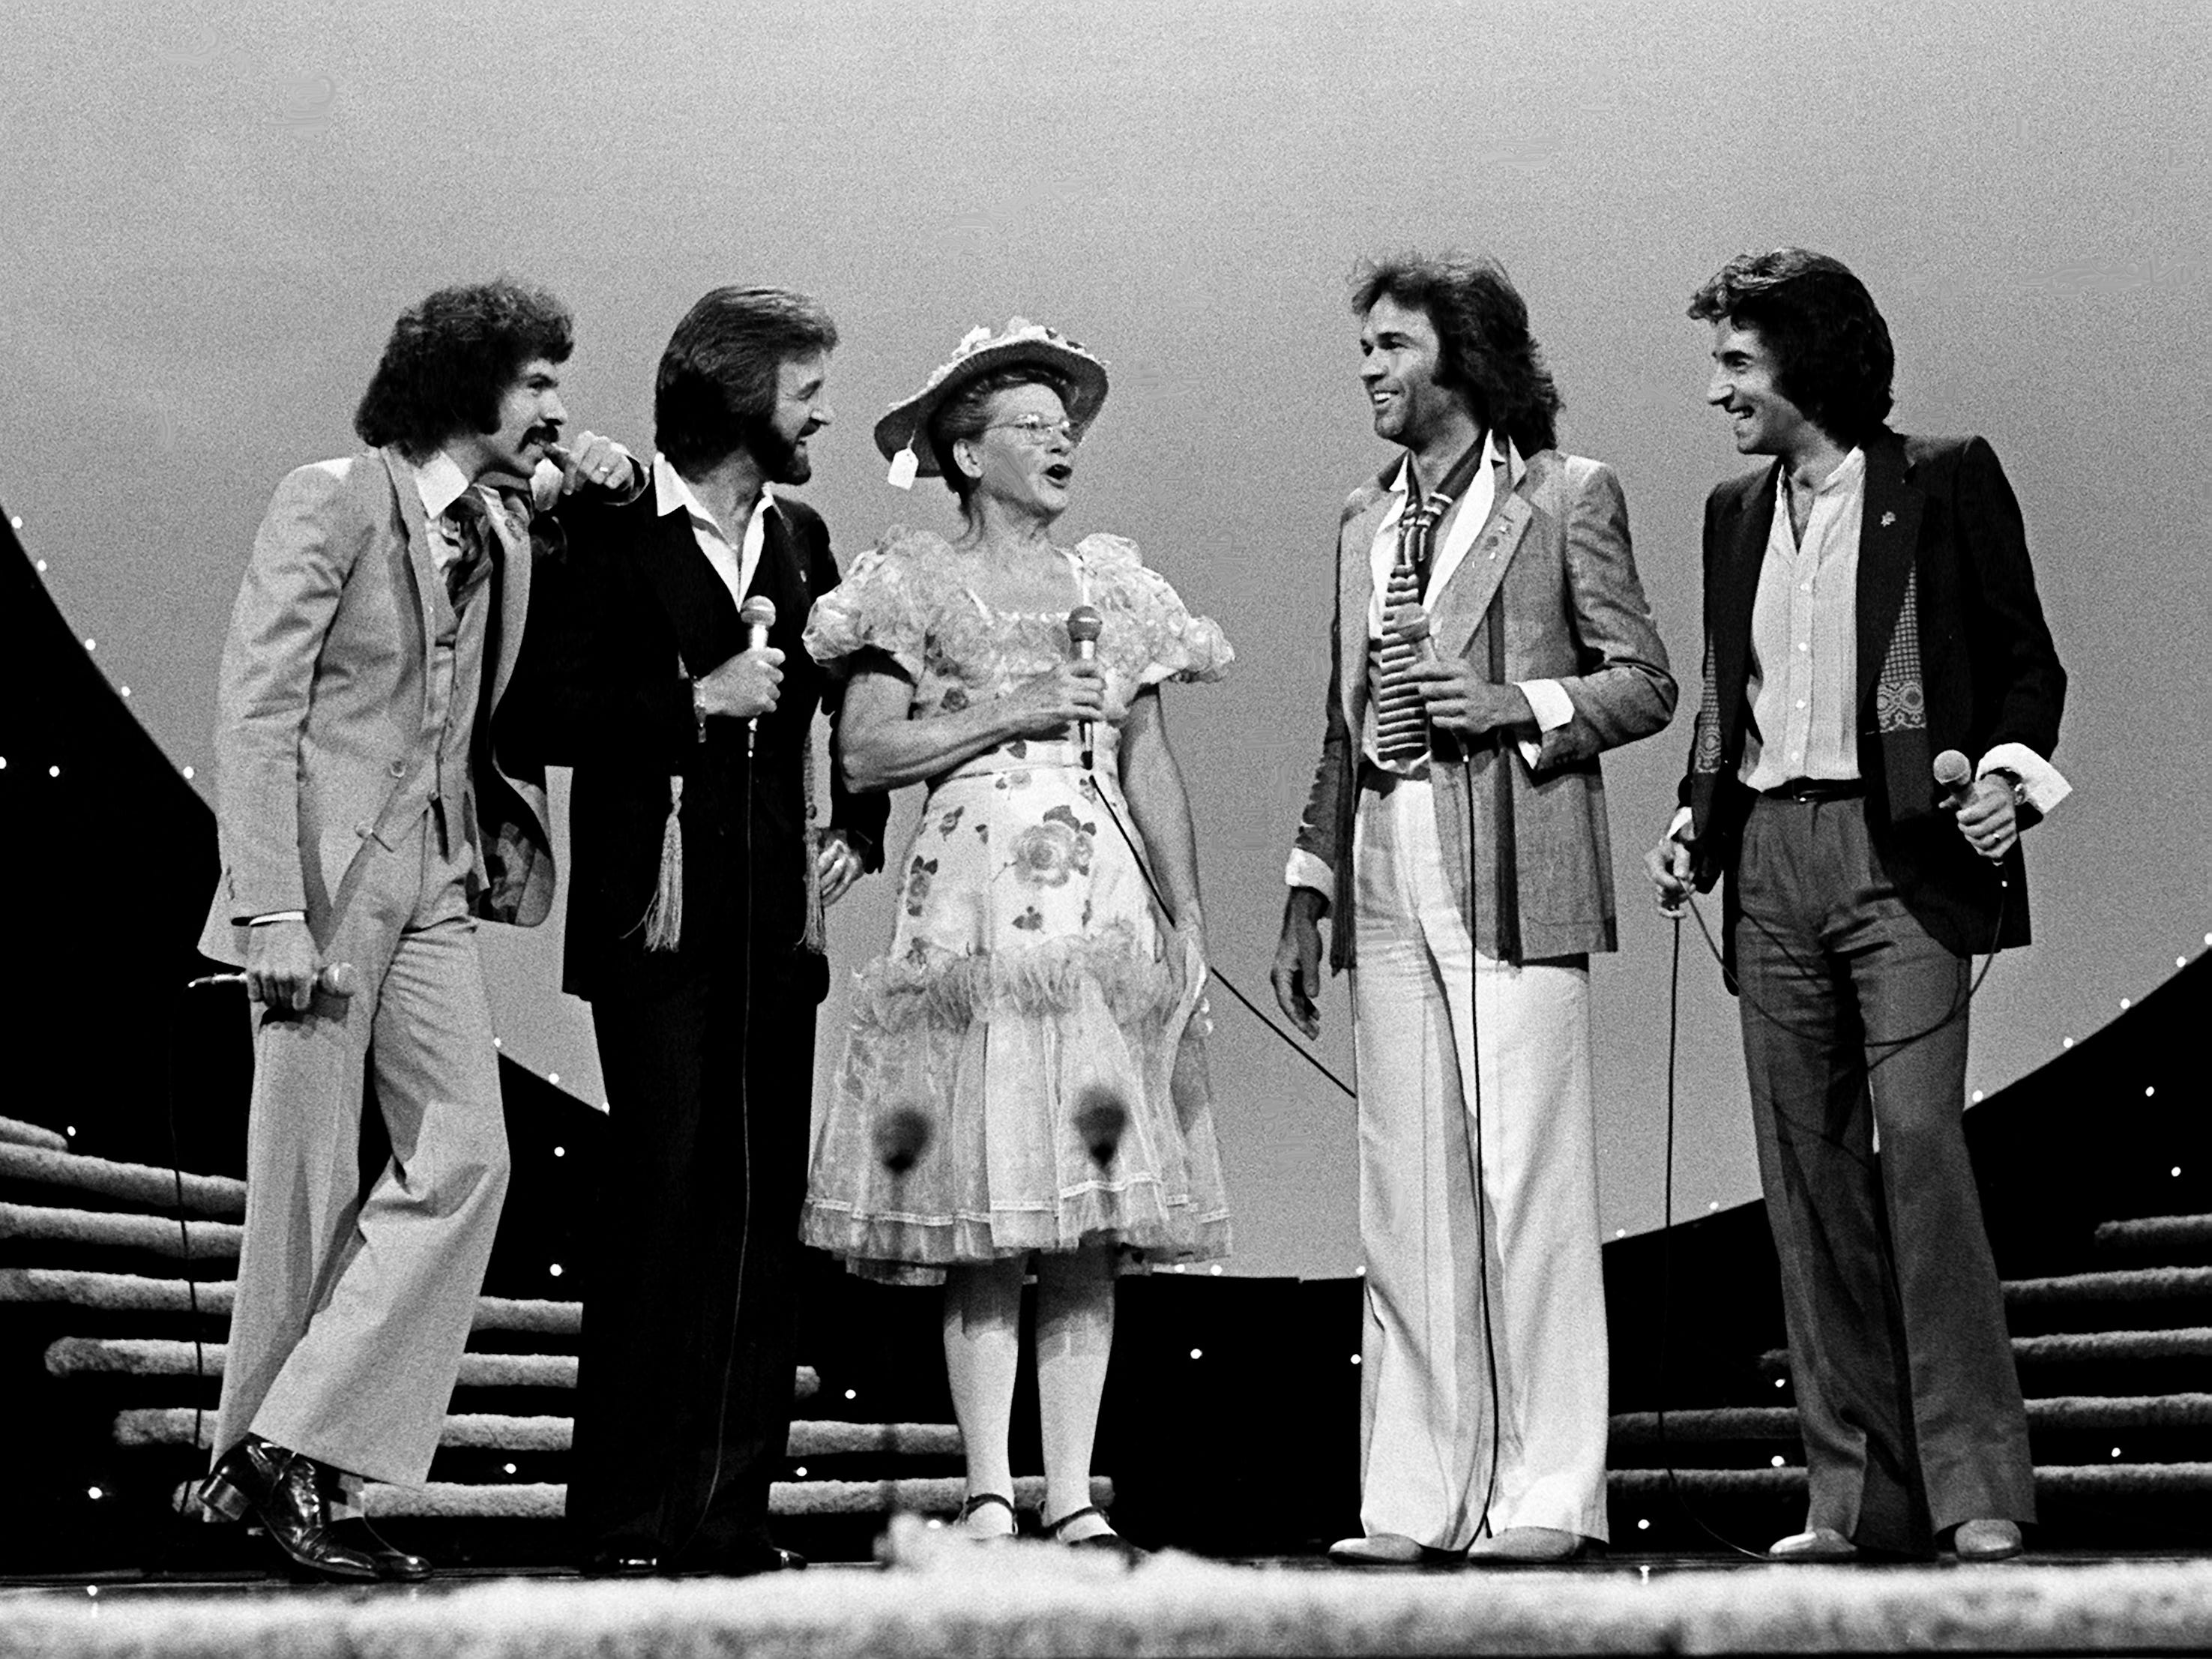 Minnie Pearl, center, joins the Oak Ridge Boys — Joe Bonsall, left, Duane Allen, William Lee Golden and Richard Sterban — as presenters during the 12th annual CMA Awards show at the Grand Ole Opry House on Oct. 9, 1978.